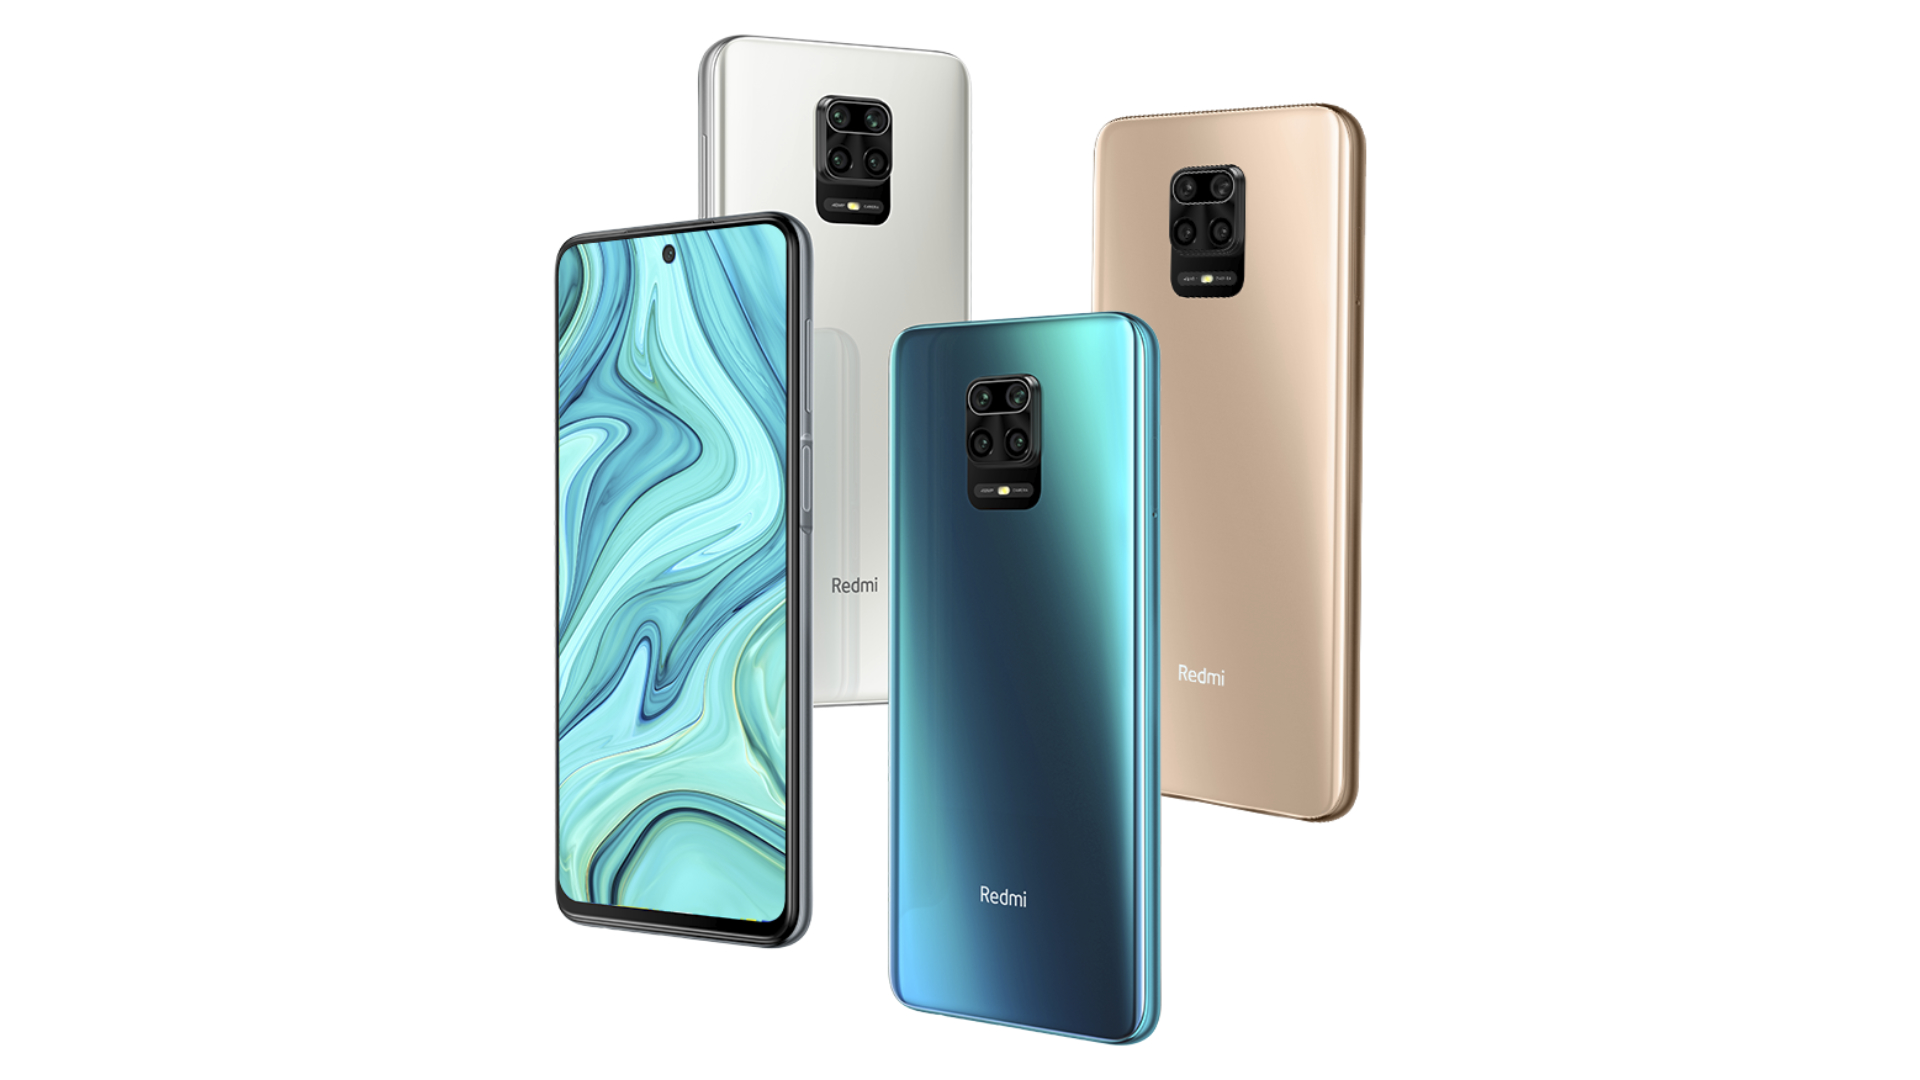 Another?  Xiaomi launches Redmi Note 10 Lite with quad camera and SD 720G – Mobile – Tecnoblog